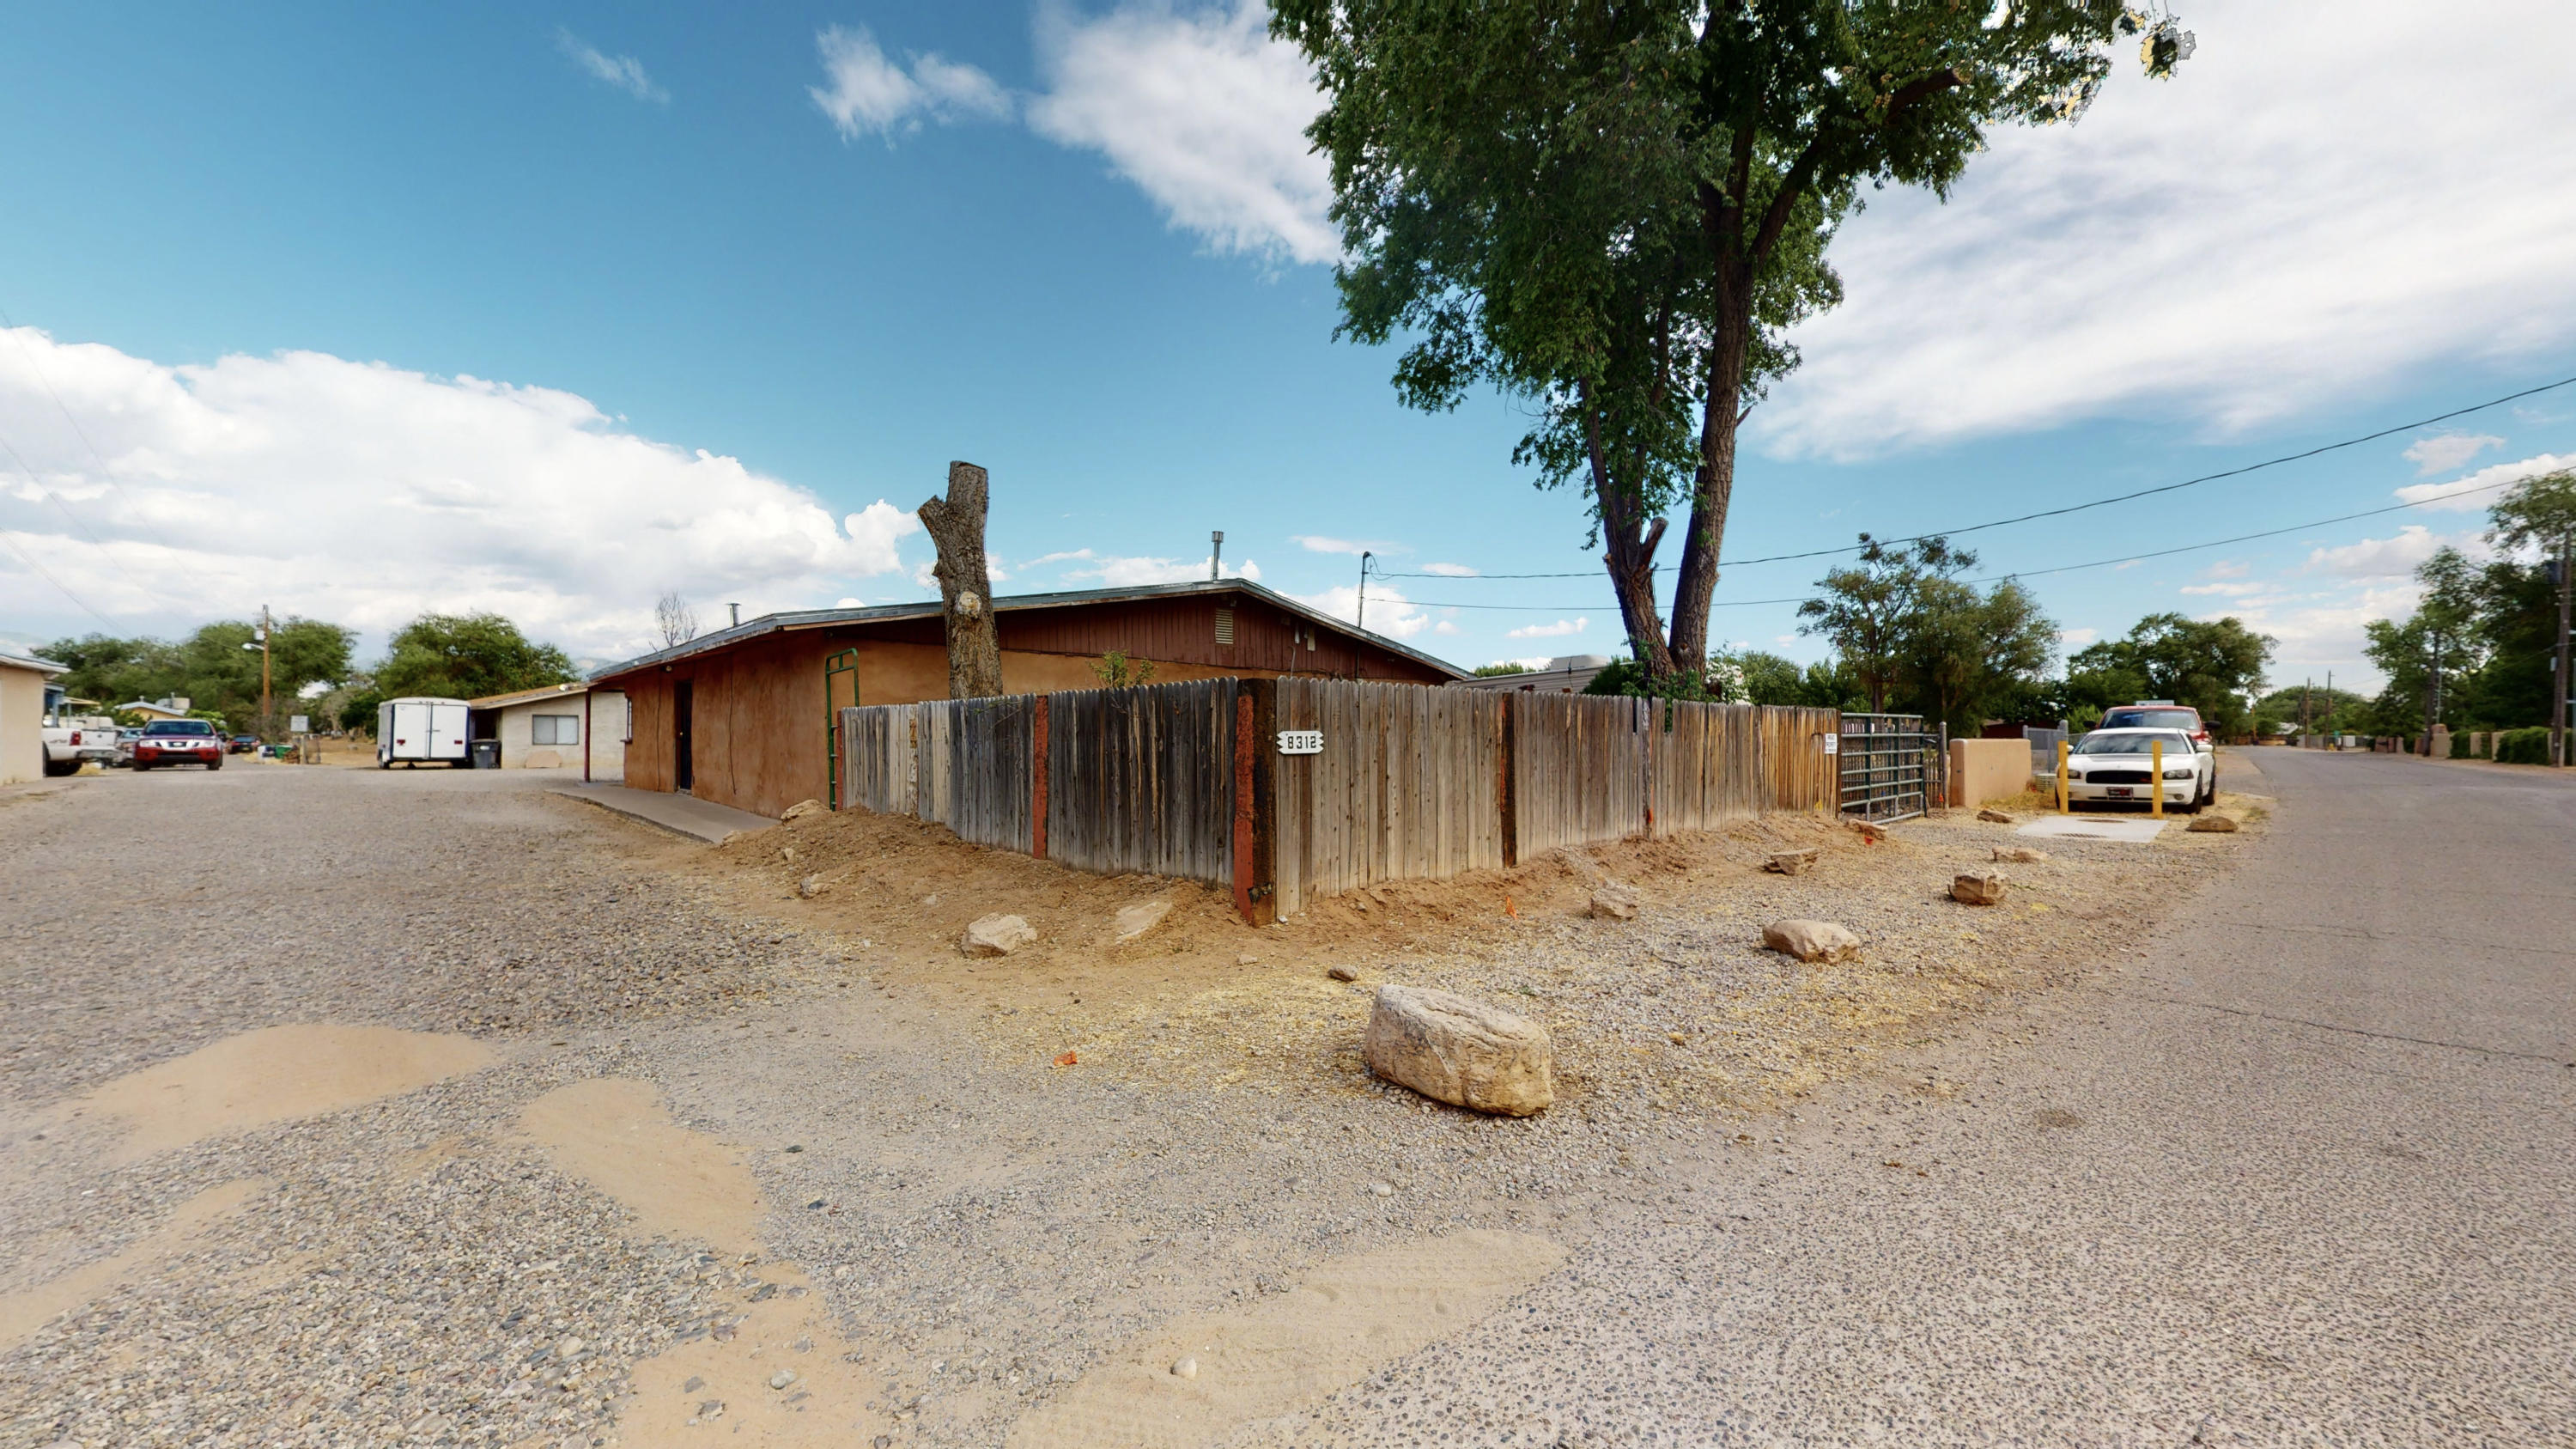 Property in the Heart of Los Ranchos!!! This adobe home has lots of potential and is need of the perfect buyer to give it some TLC. Sits on 2.73 acres of land that has irrigation rights.  Large workshop has plumbing and electricity available. Property can be subdivided. Schedule showings via ShowingTime